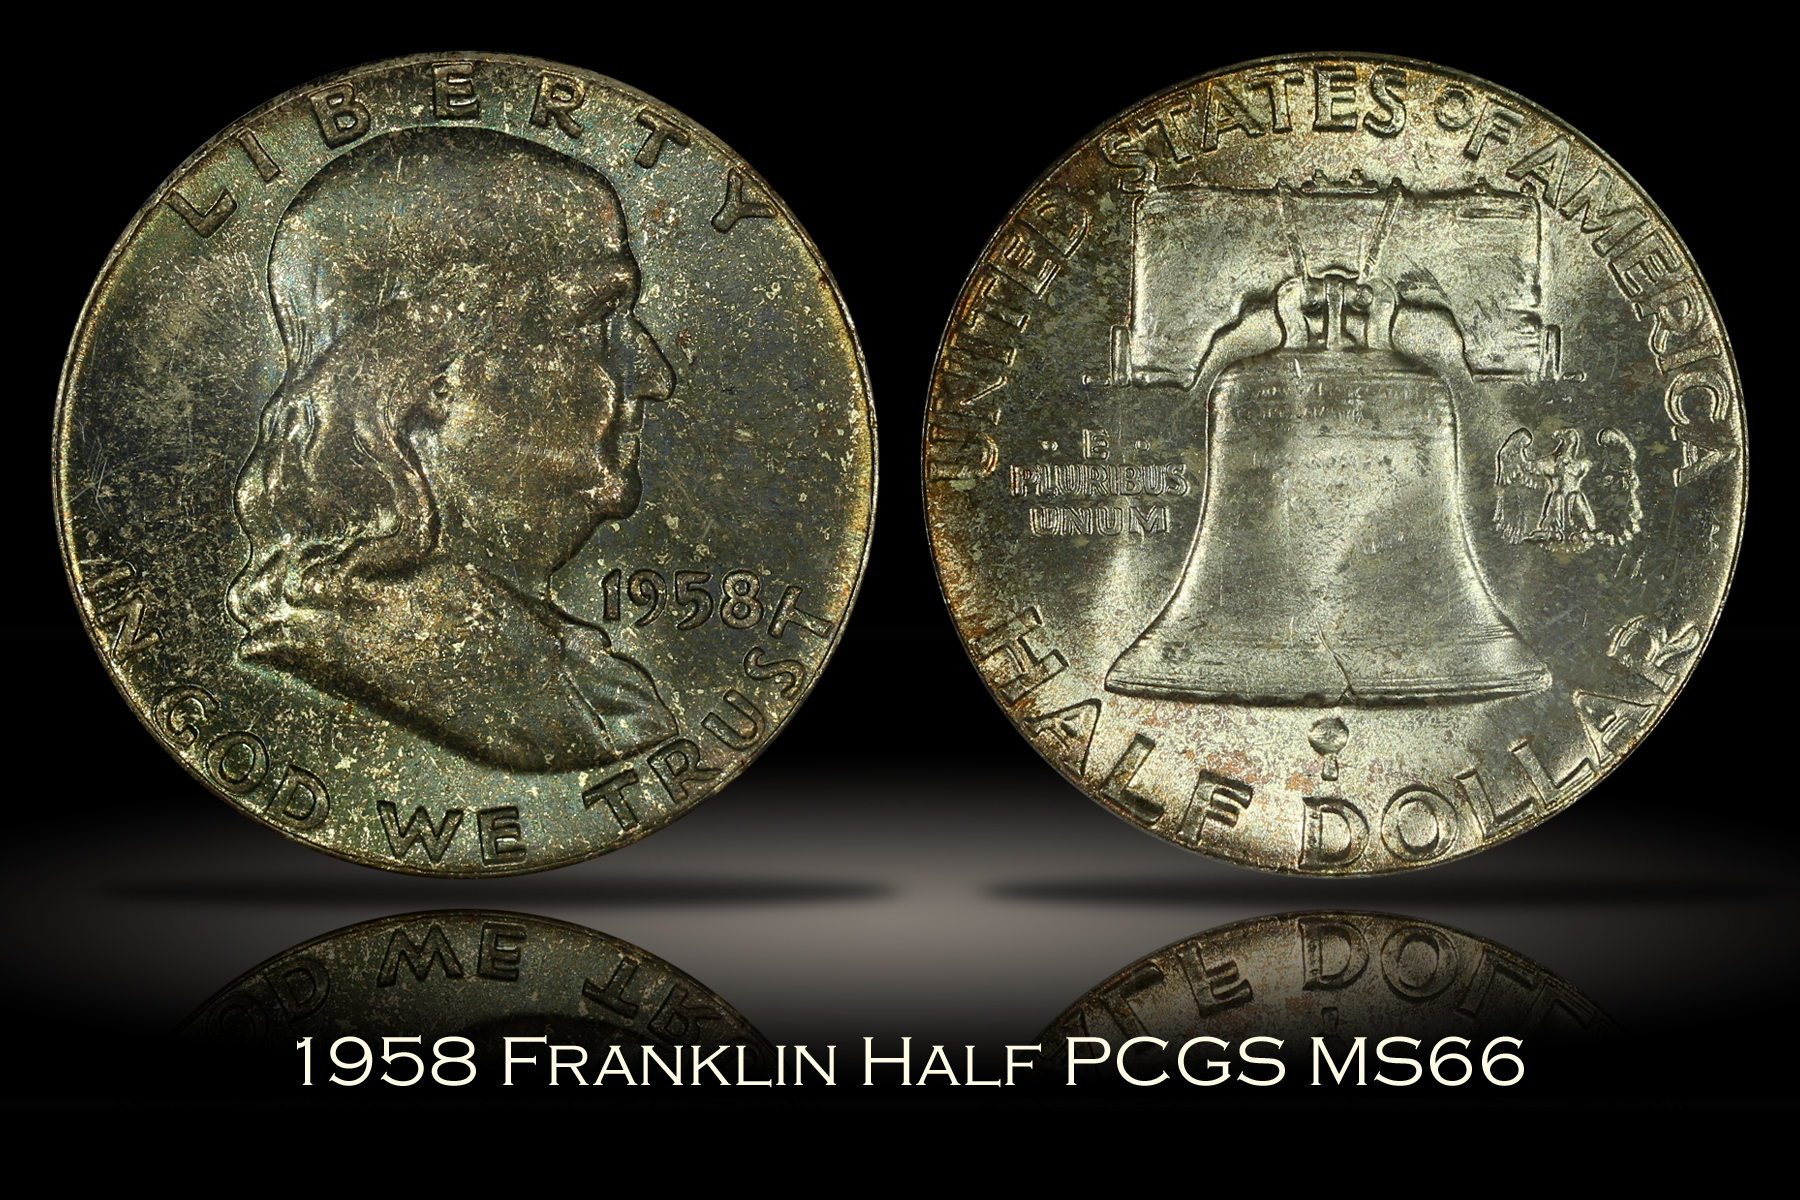 1958 Franklin Half PCGS MS66